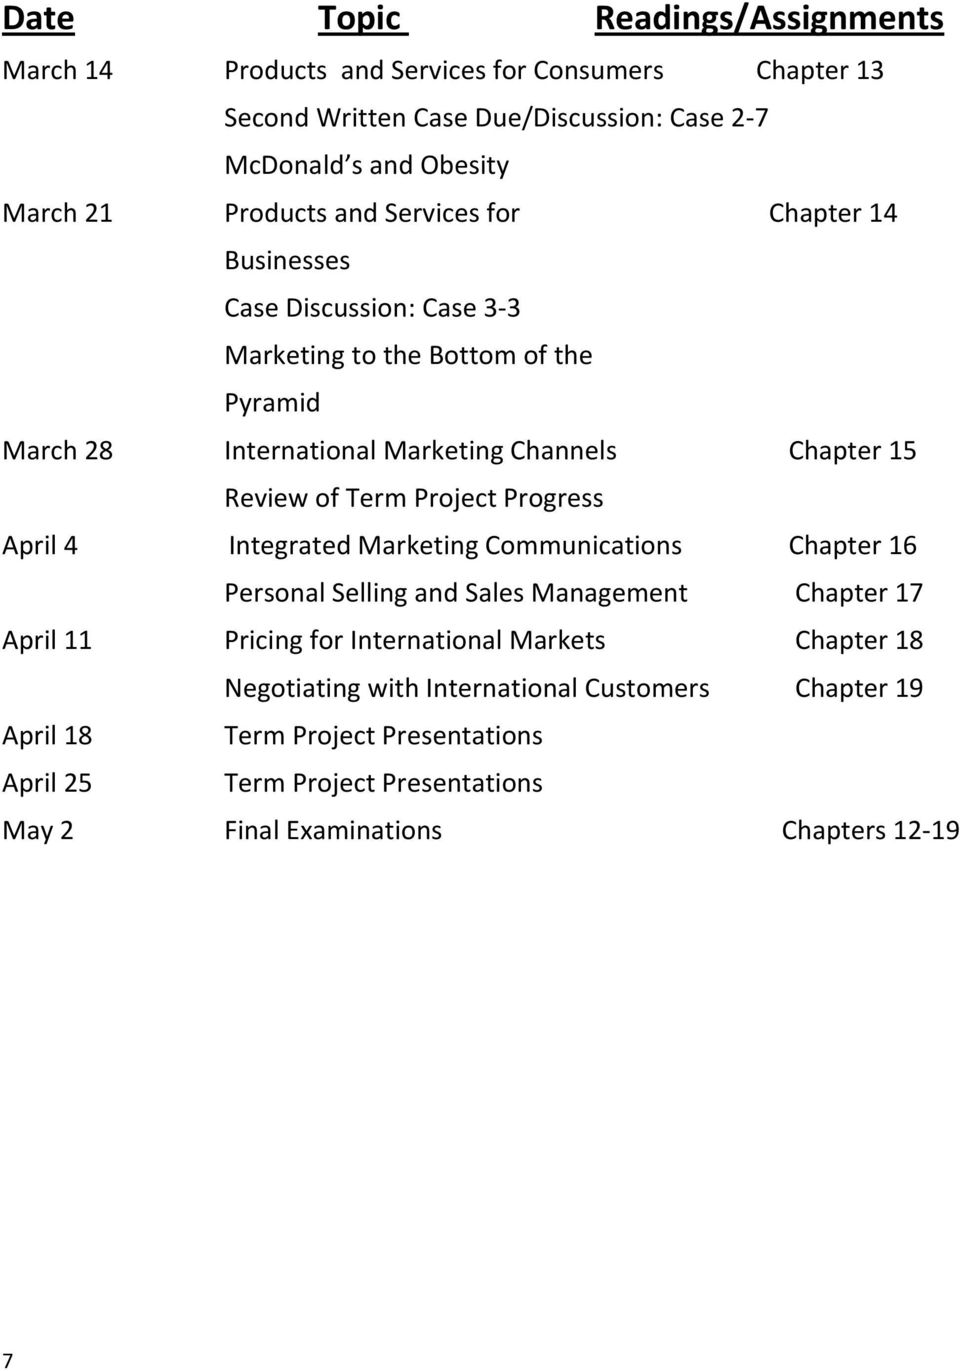 Review of Term Project Progress April 4 Integrated Marketing Communications Chapter 16 Personal Selling and Sales Management Chapter 17 April 11 Pricing for International